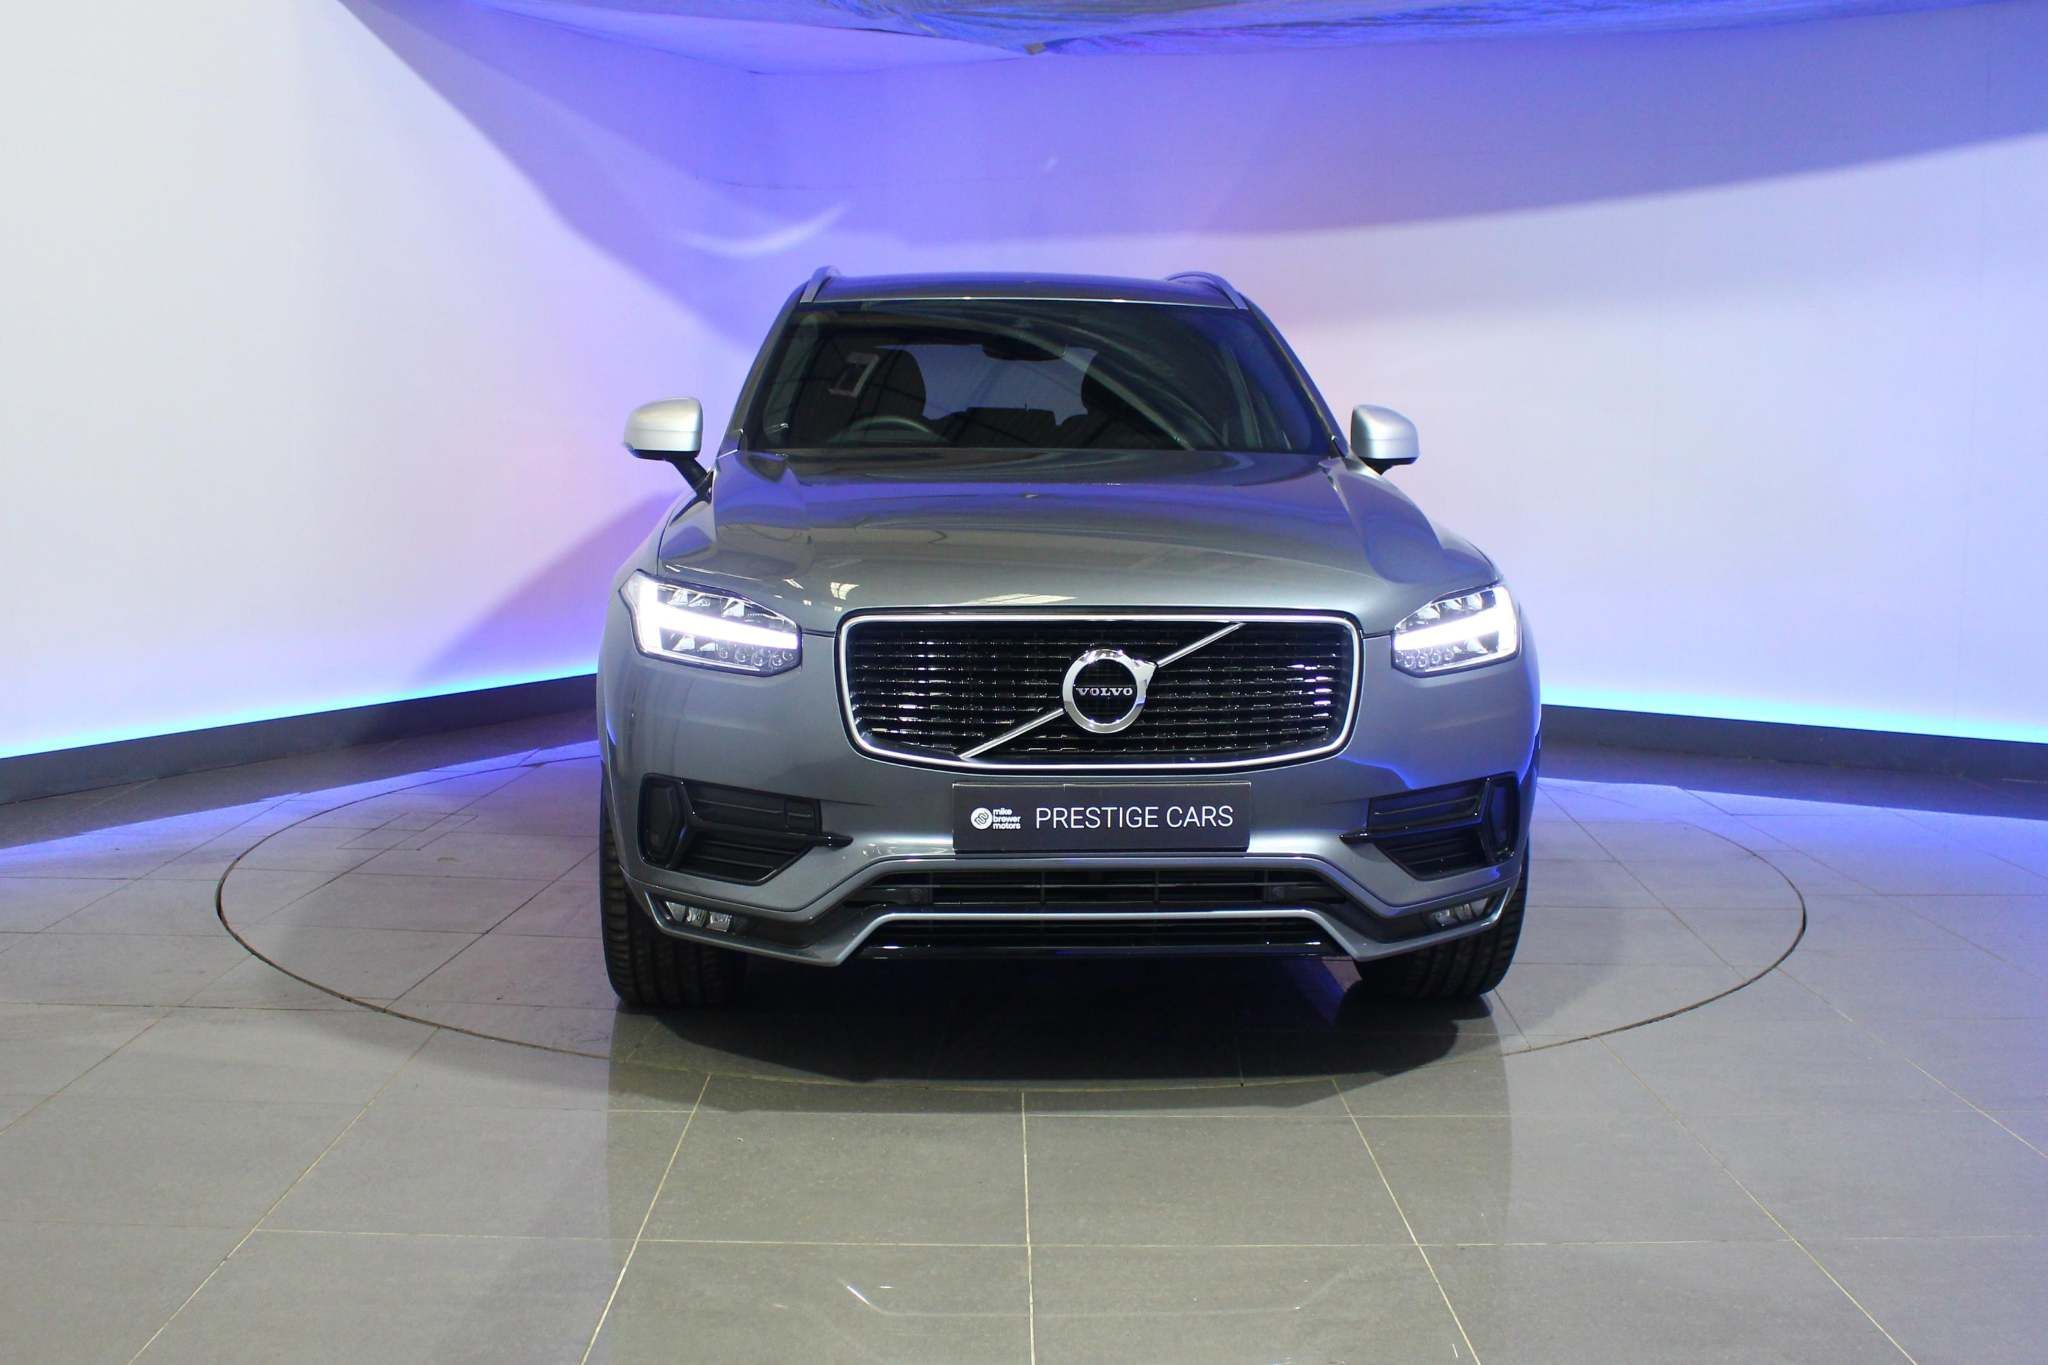 Used Volvo XC90 2.0 D5 Powerpulse R-Design Auto 4wd (s/s) 5dr